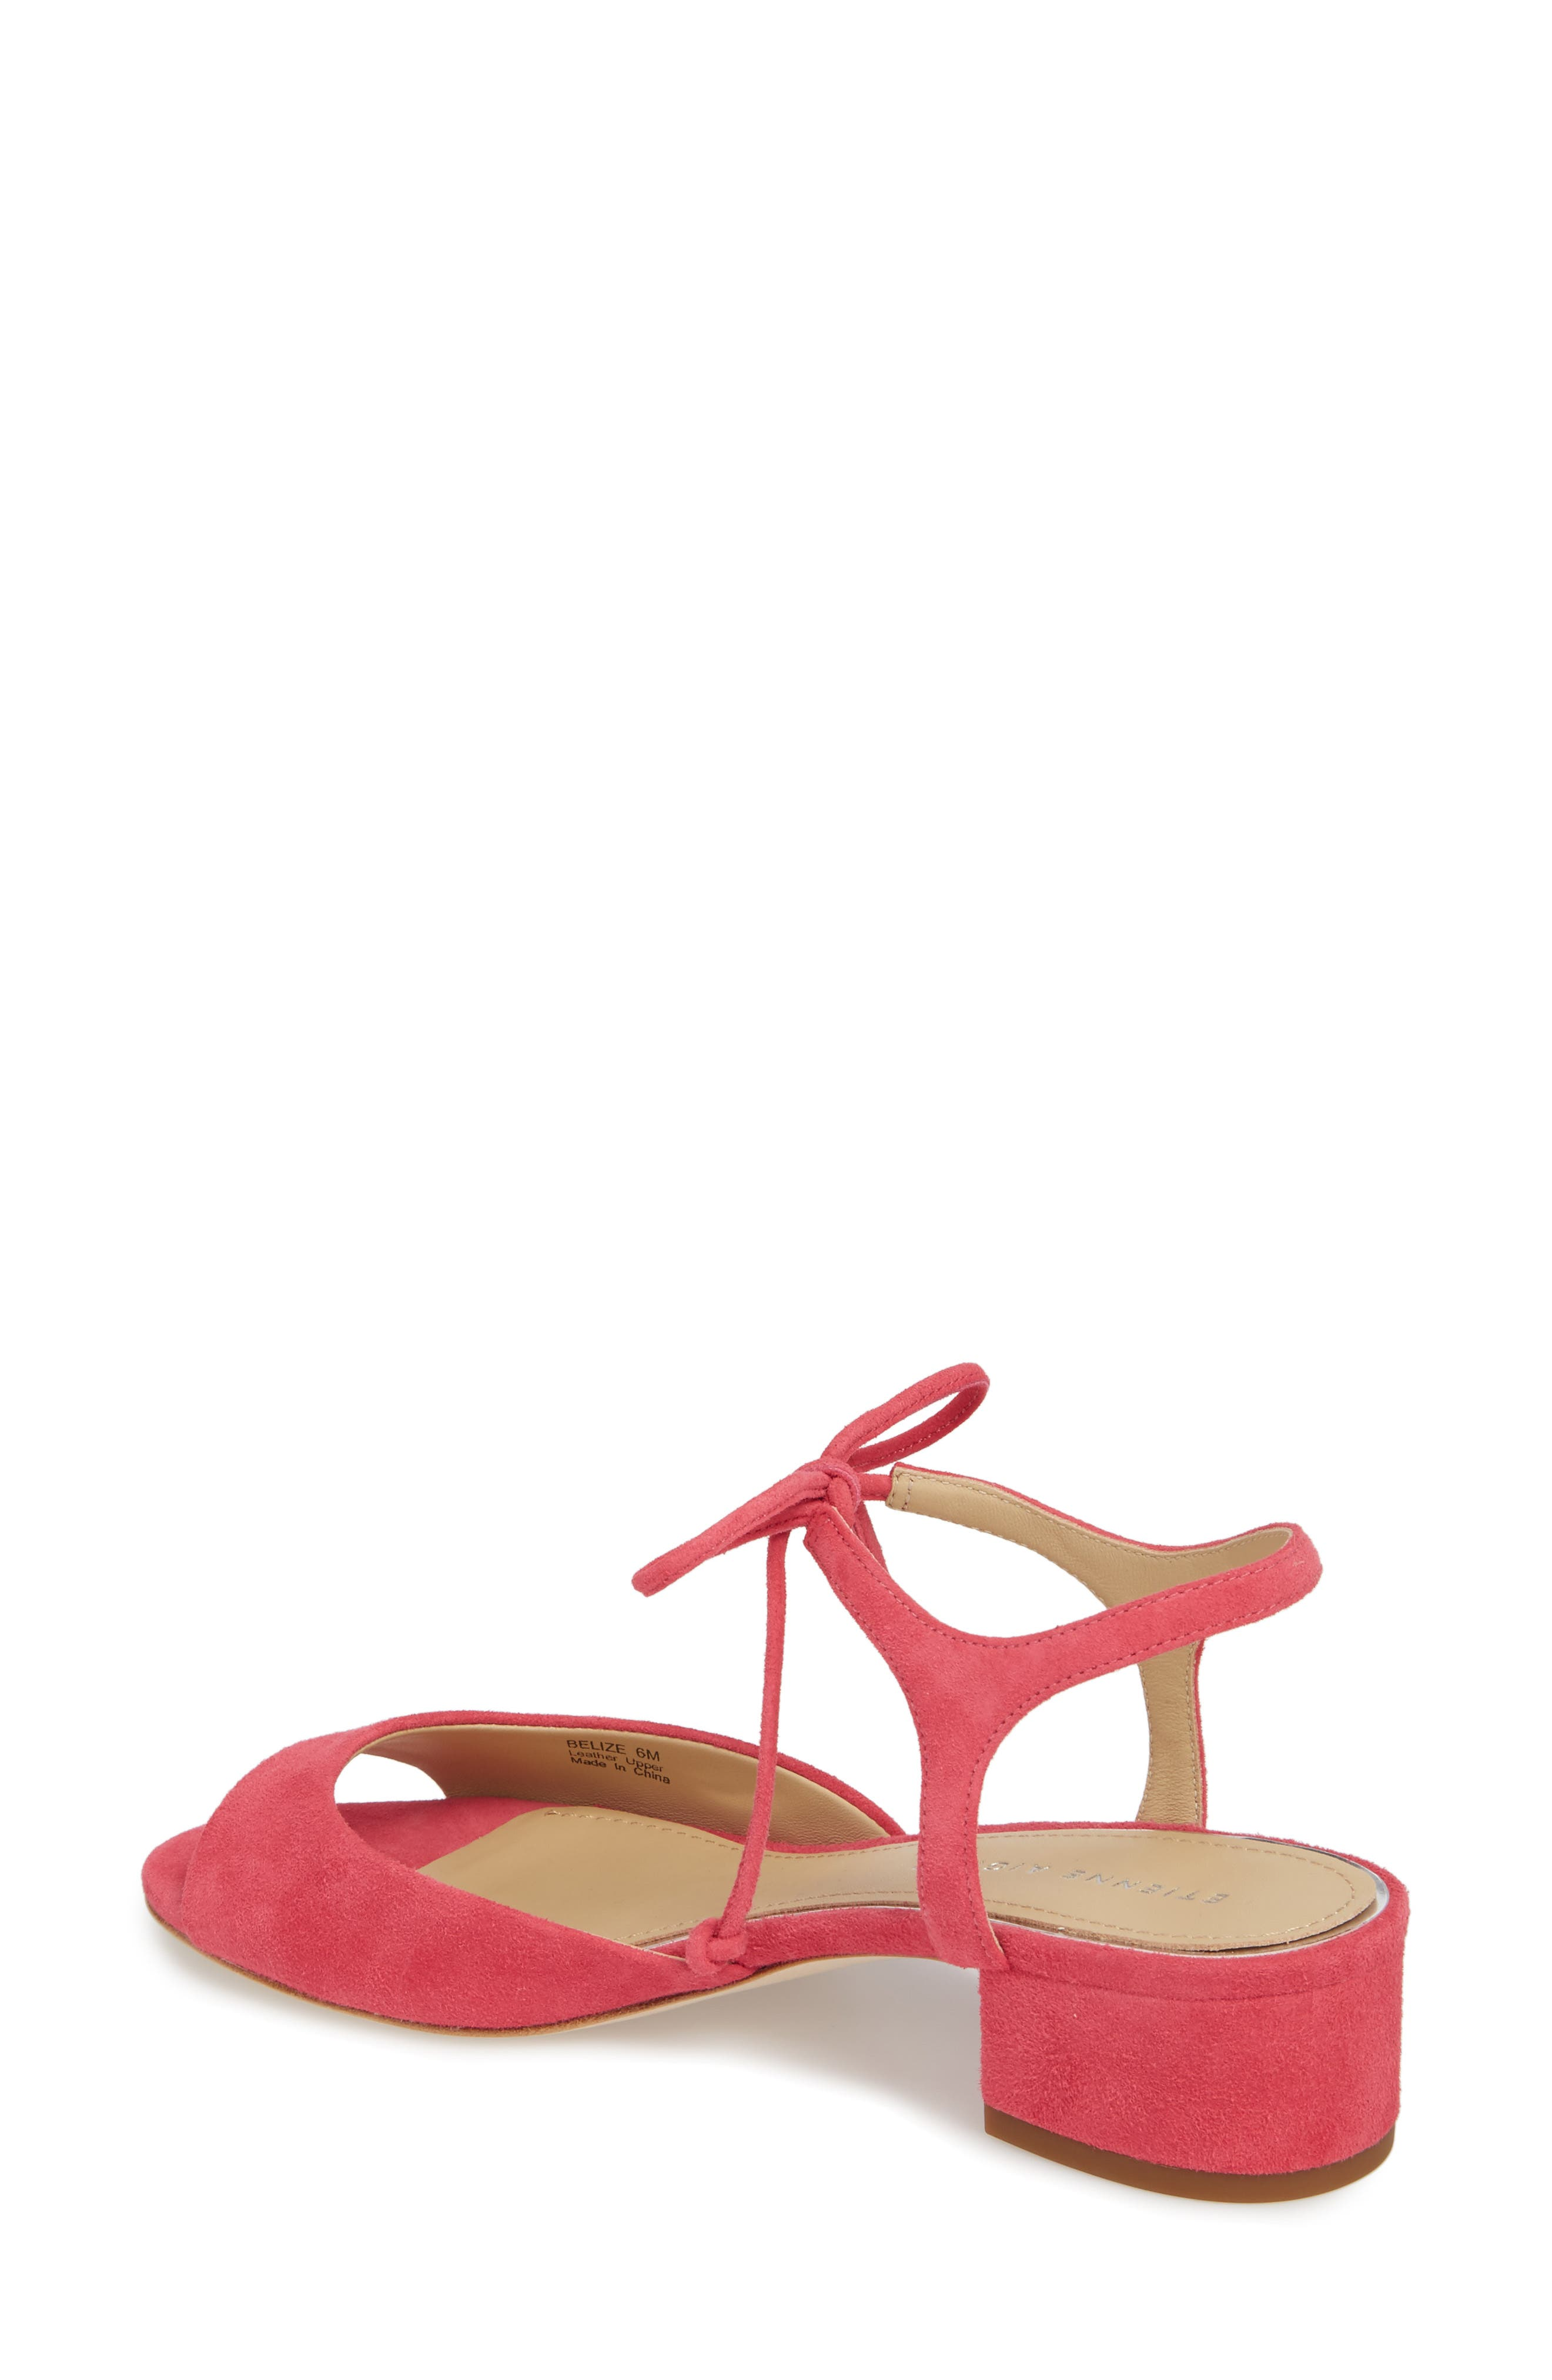 Belize Strappy Sandal,                             Alternate thumbnail 2, color,                             Peony Suede